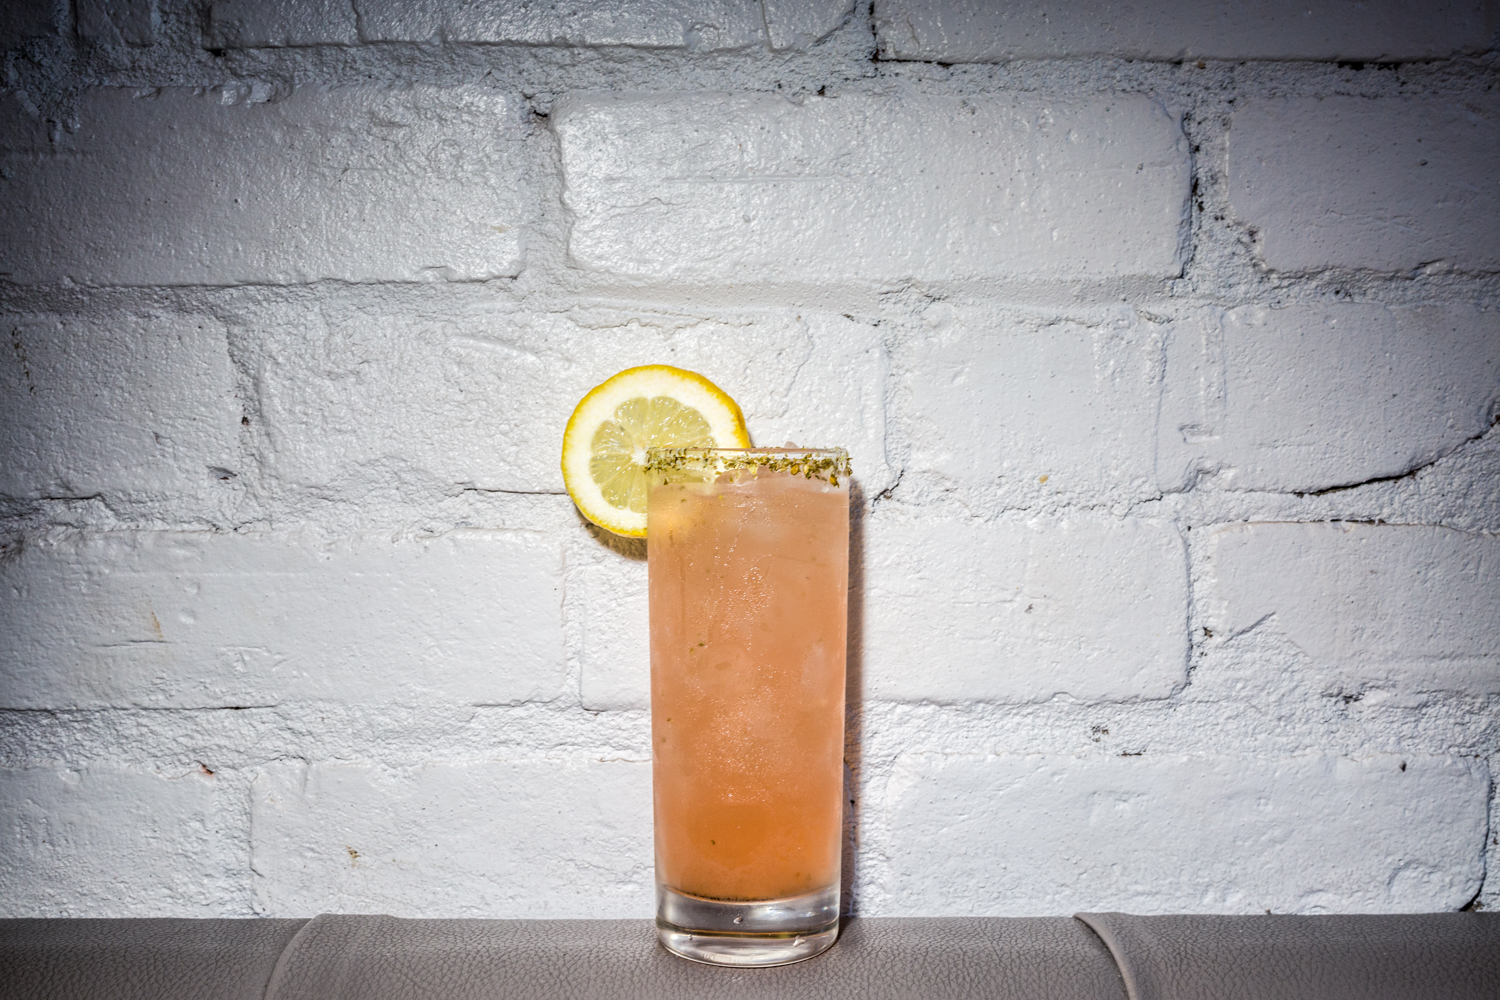 Za'atargarita: El Jimador Blanco, za'atar syrup, grapefruit juice, and lemon / Image: Catherine Viox{ }// Published: 9.30.19